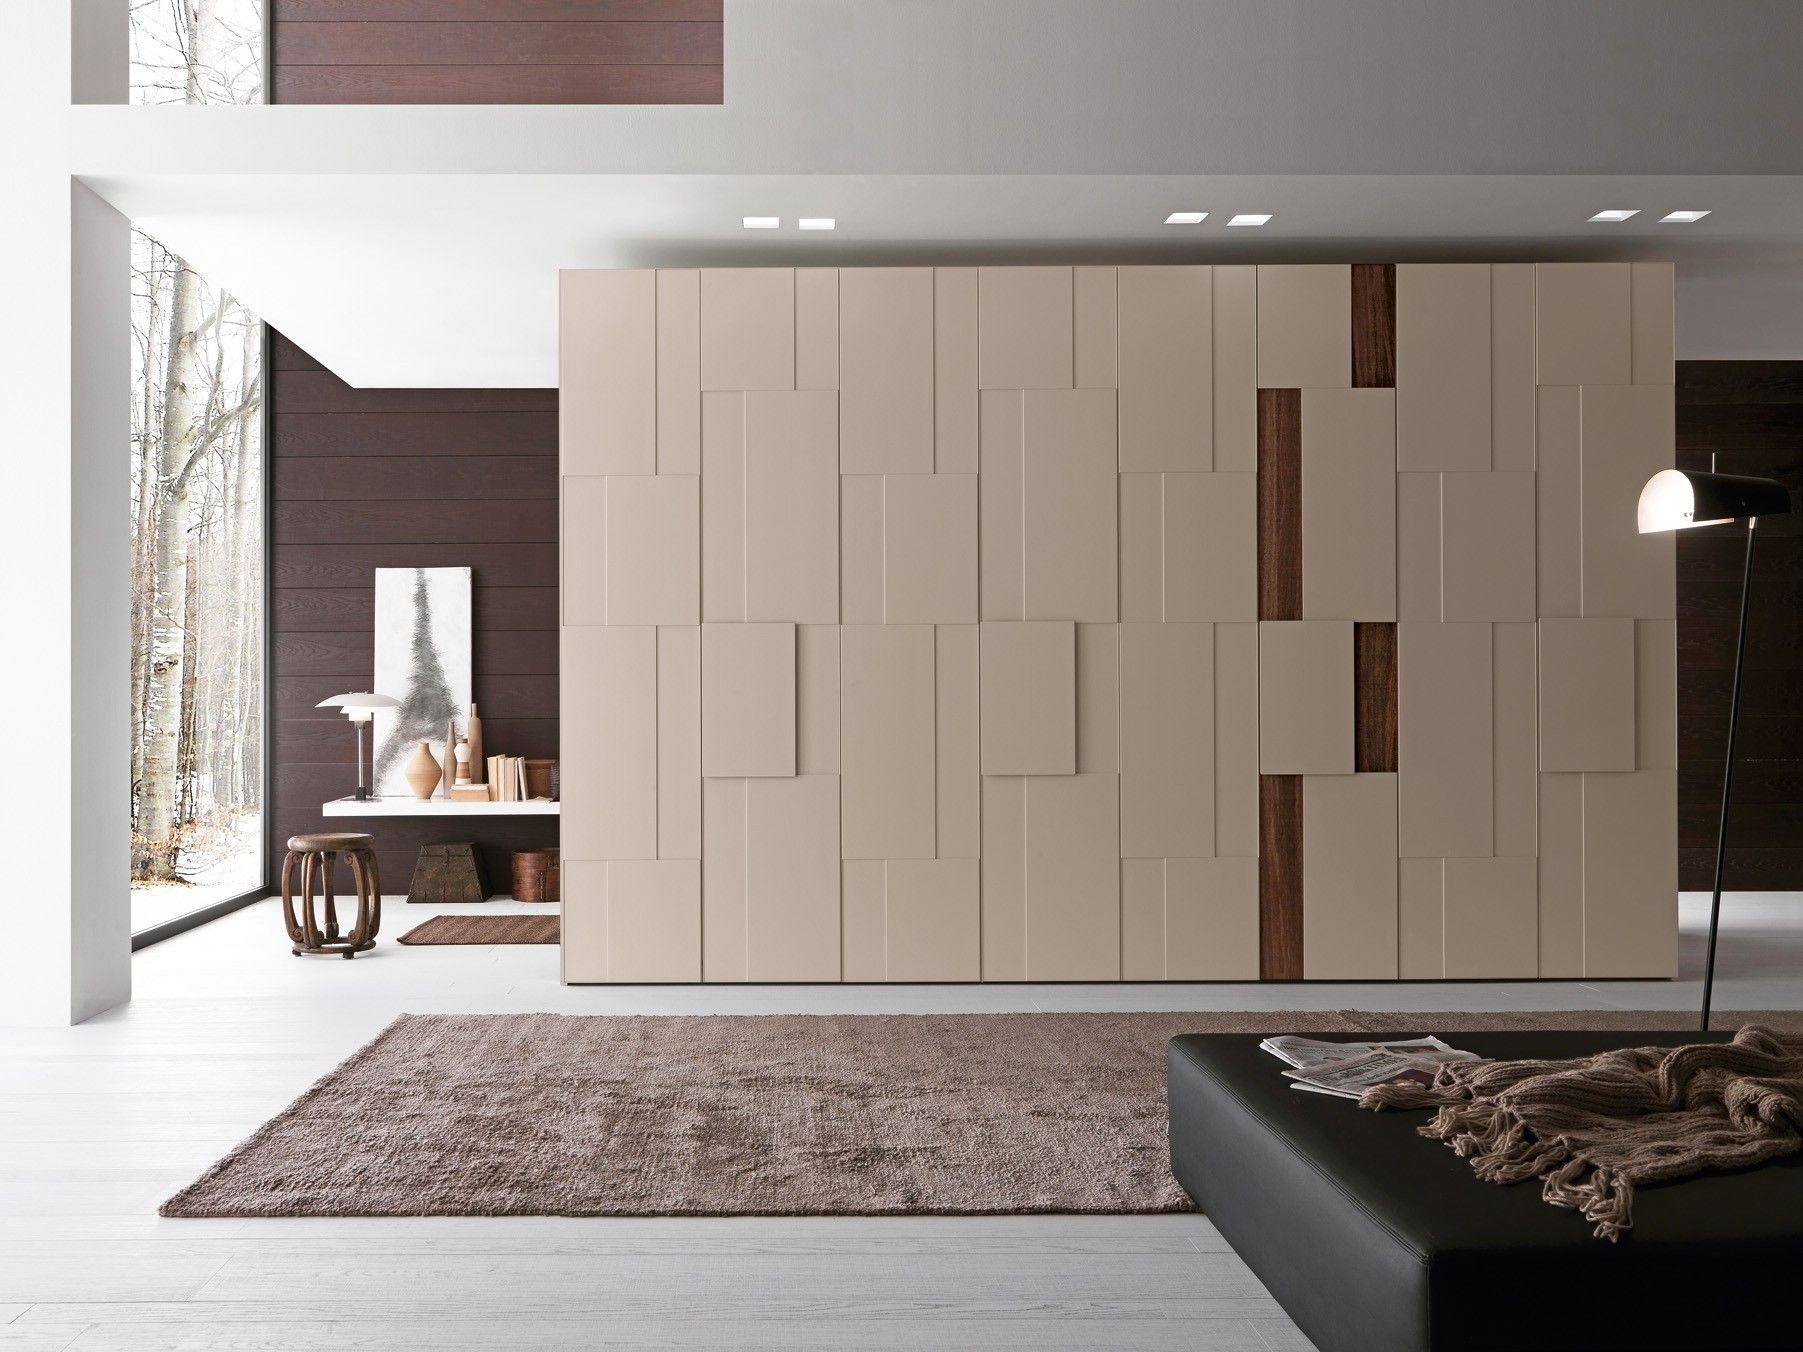 Built in bedroom cabinets modern with photo of built in collection at - Bedroom Popular Modern Wardrobe Armoire Designs Building A Closet Clothes Cabinets Appealing Scenic Enclosed White Polished Built